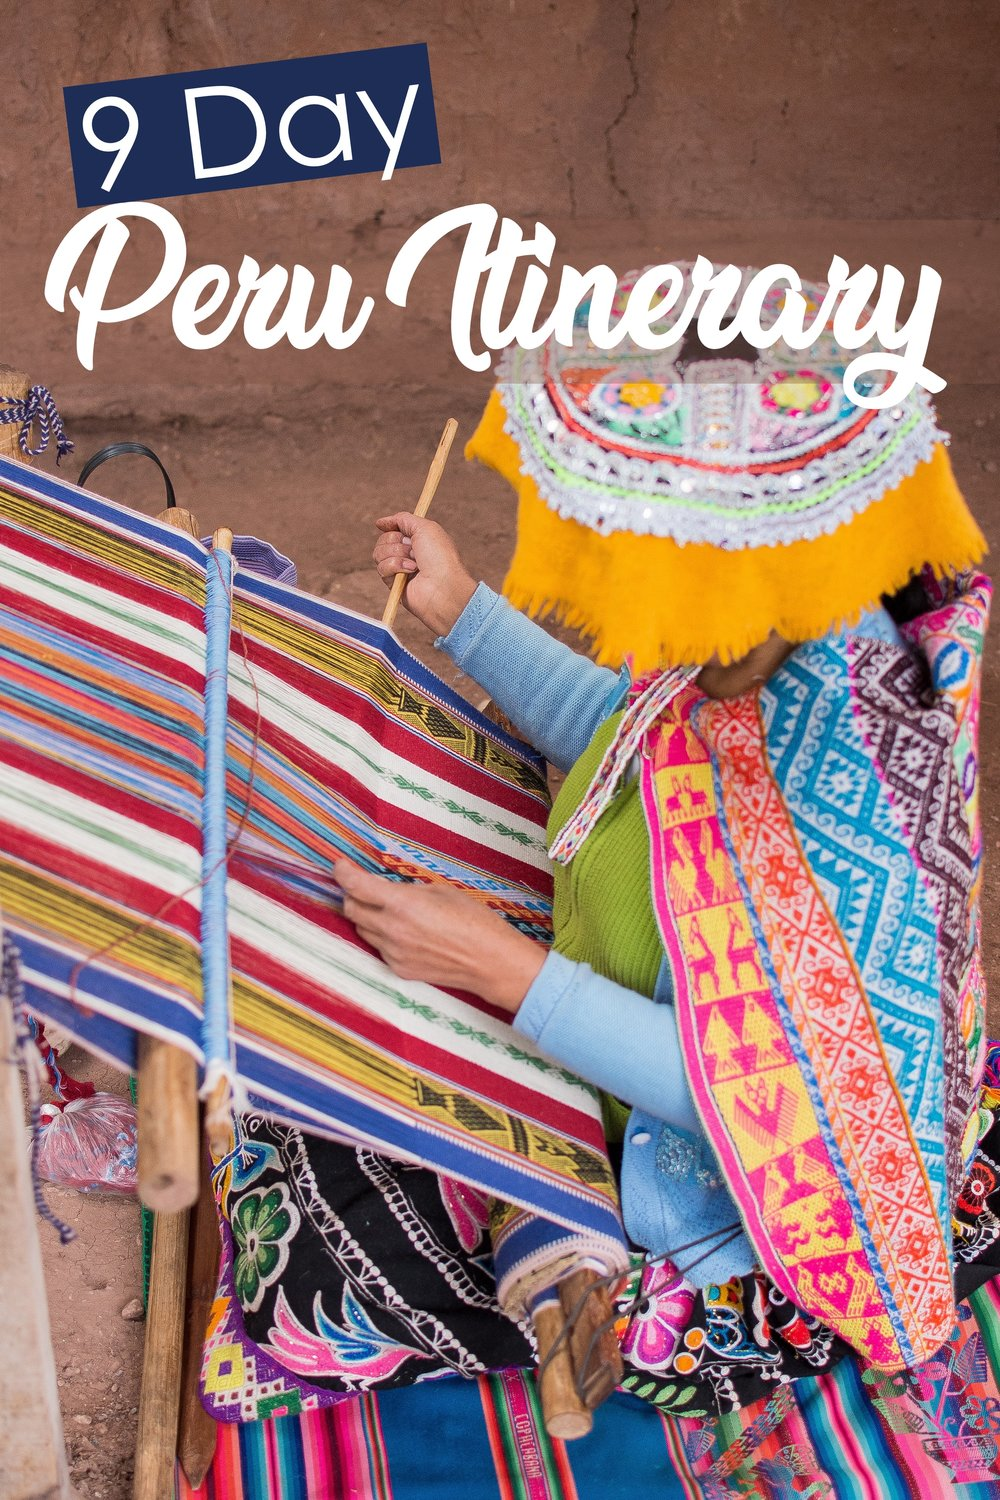 Detailed Itinerary for 9 Days in Peru – visit Cusco, Lake Titicaca, Sacred Valley, and Lima #itinerary #peru #southamerica